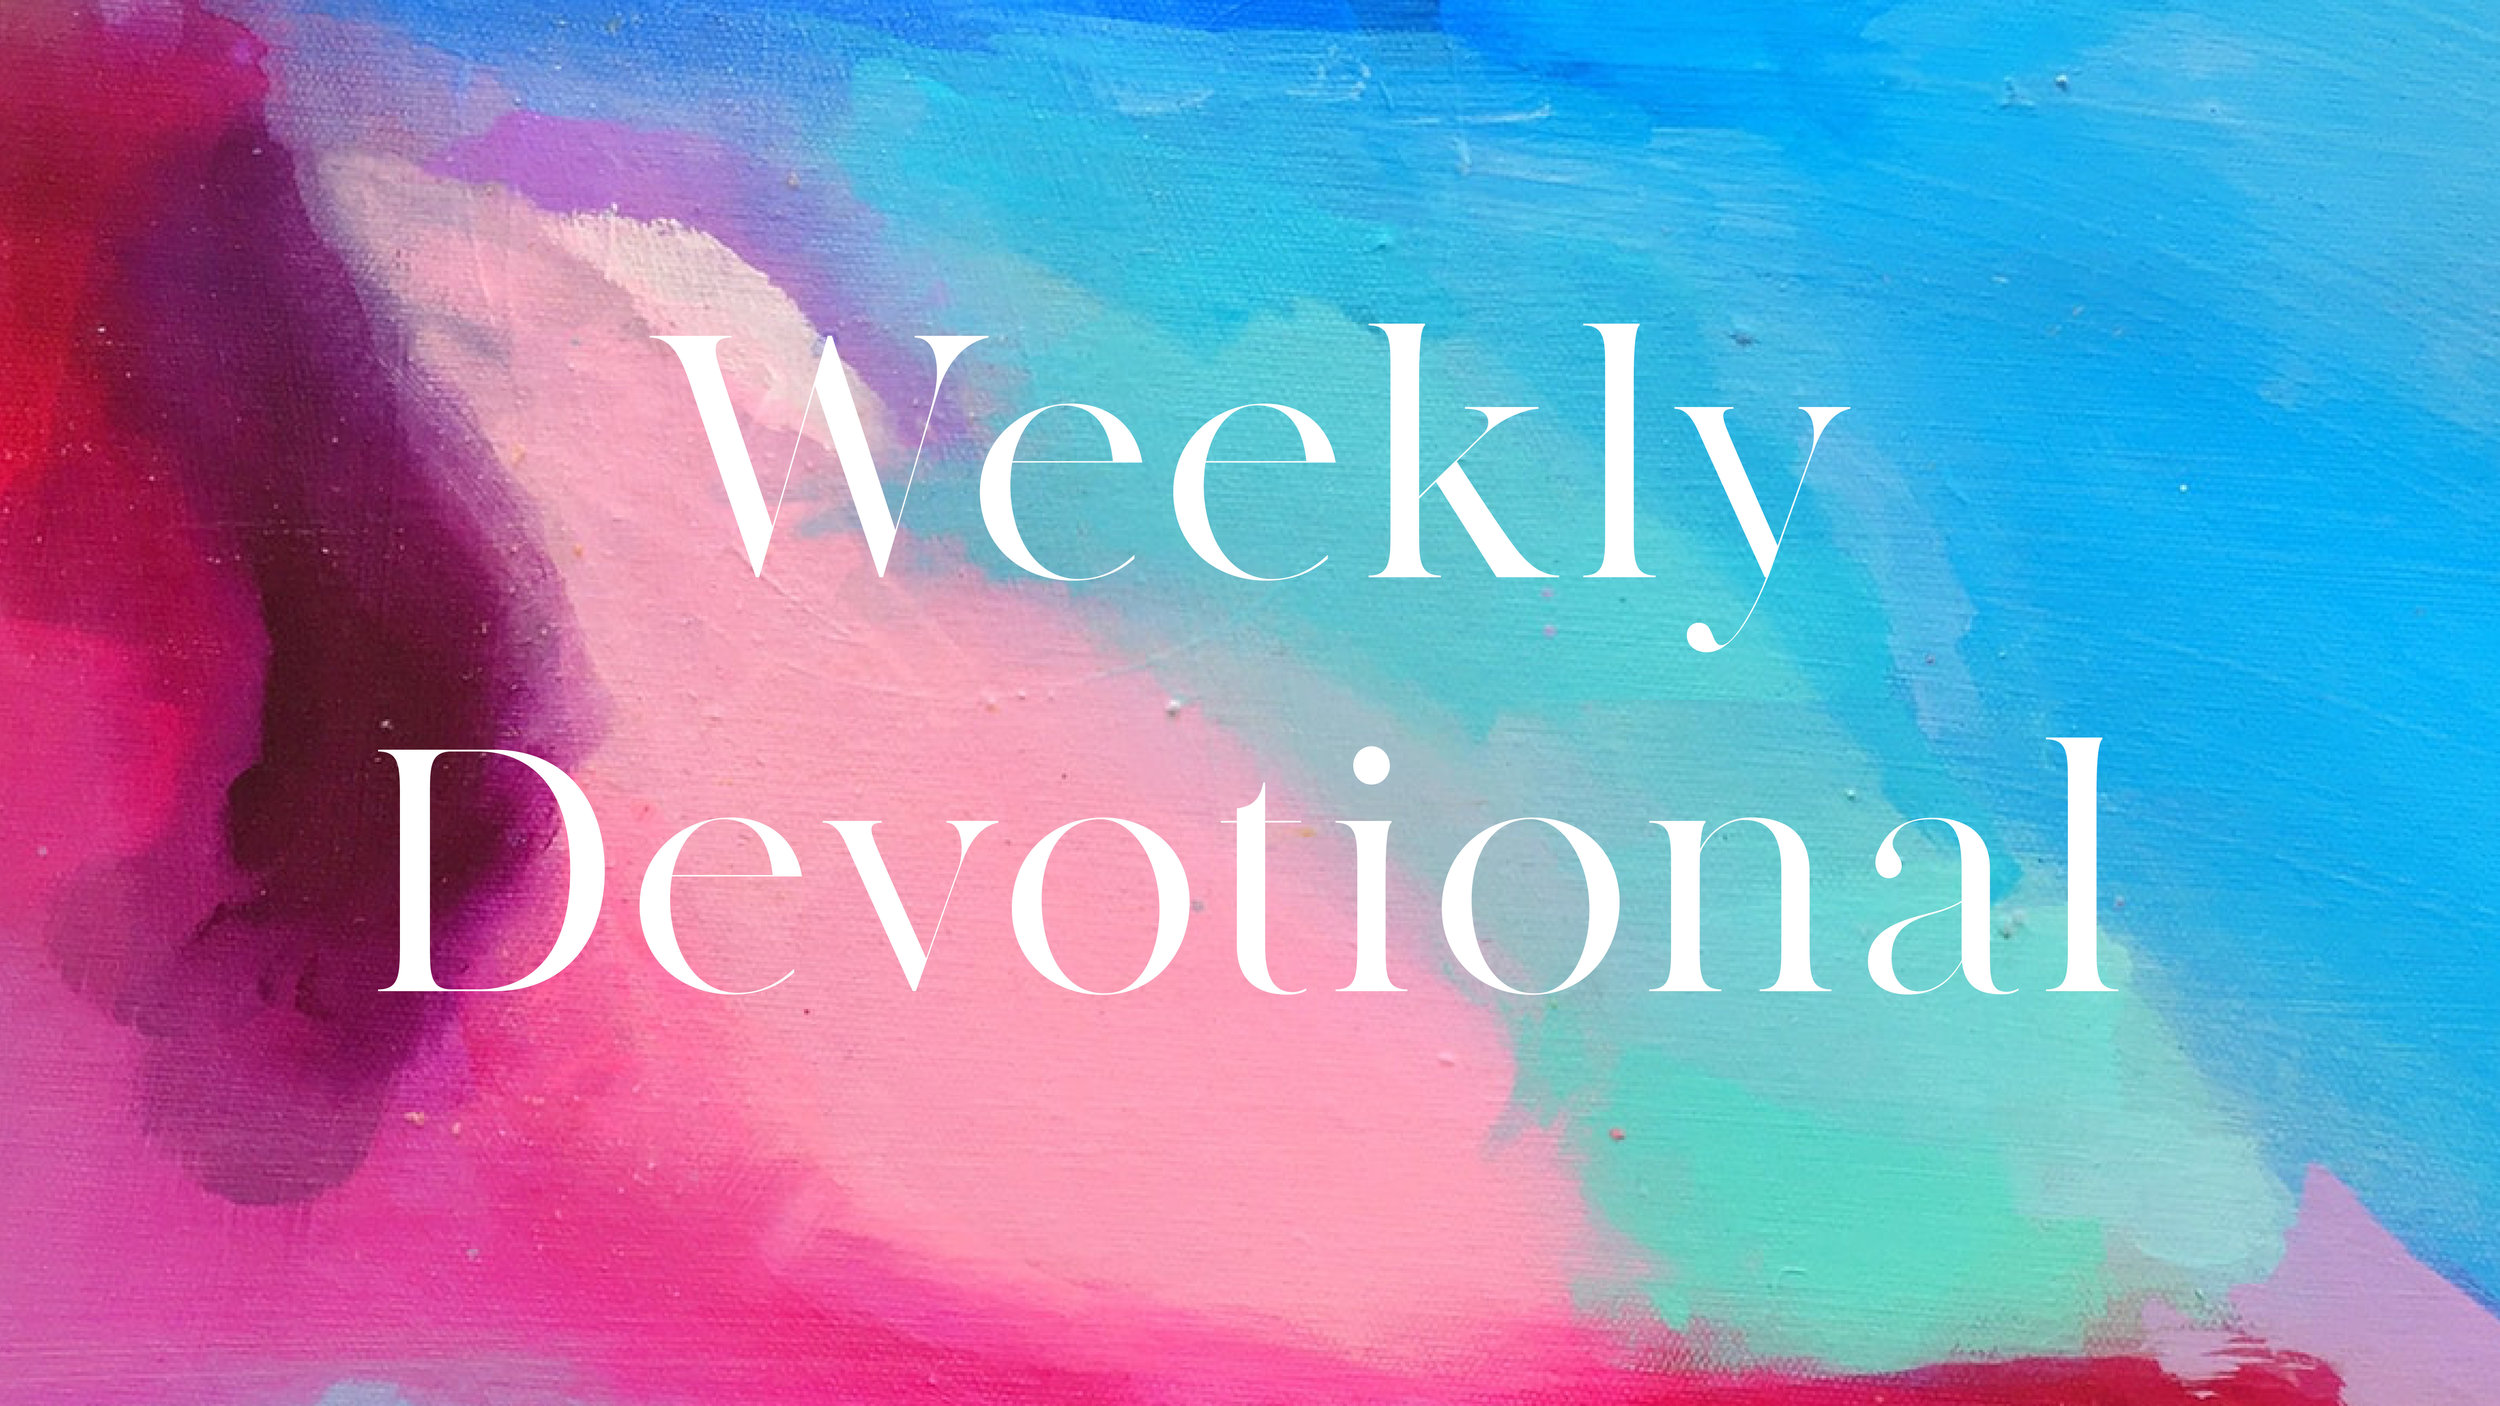 Check Out This Week's Devotion.